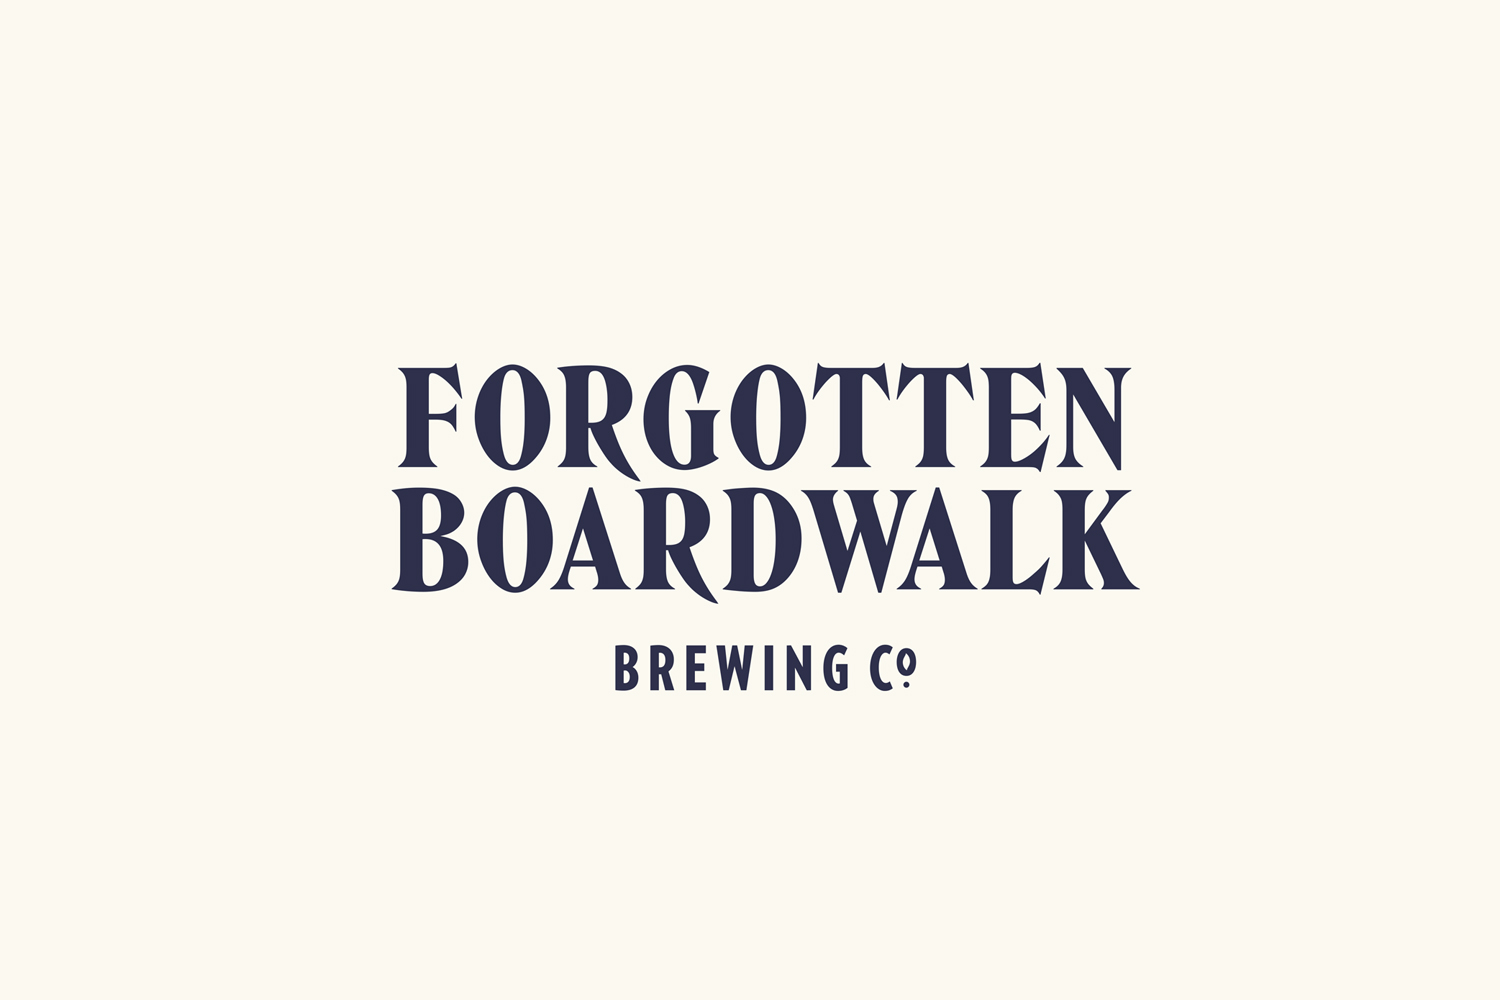 Brand identity and packaging for Forgotten Boardwalk Brewing by Perky Bros